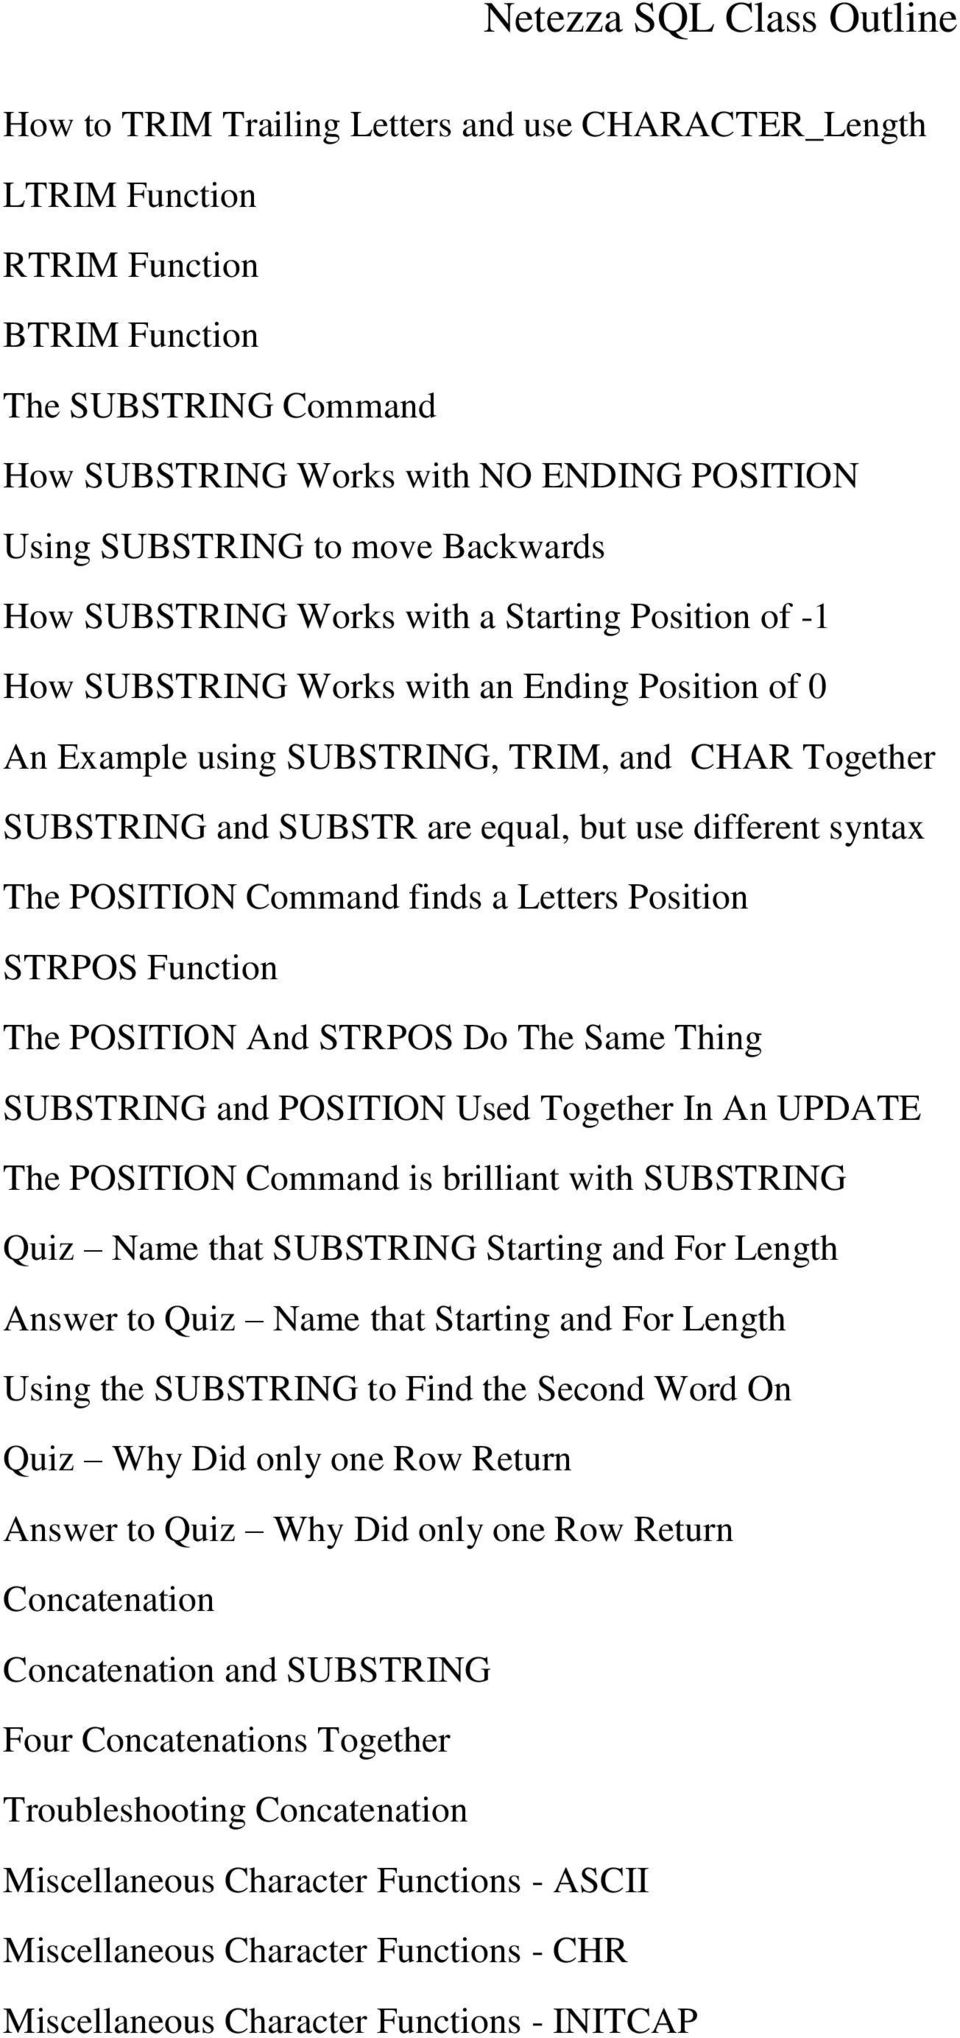 different syntax The POSITION Command finds a Letters Position STRPOS Function The POSITION And STRPOS Do The Same Thing SUBSTRING and POSITION Used Together In An UPDATE The POSITION Command is